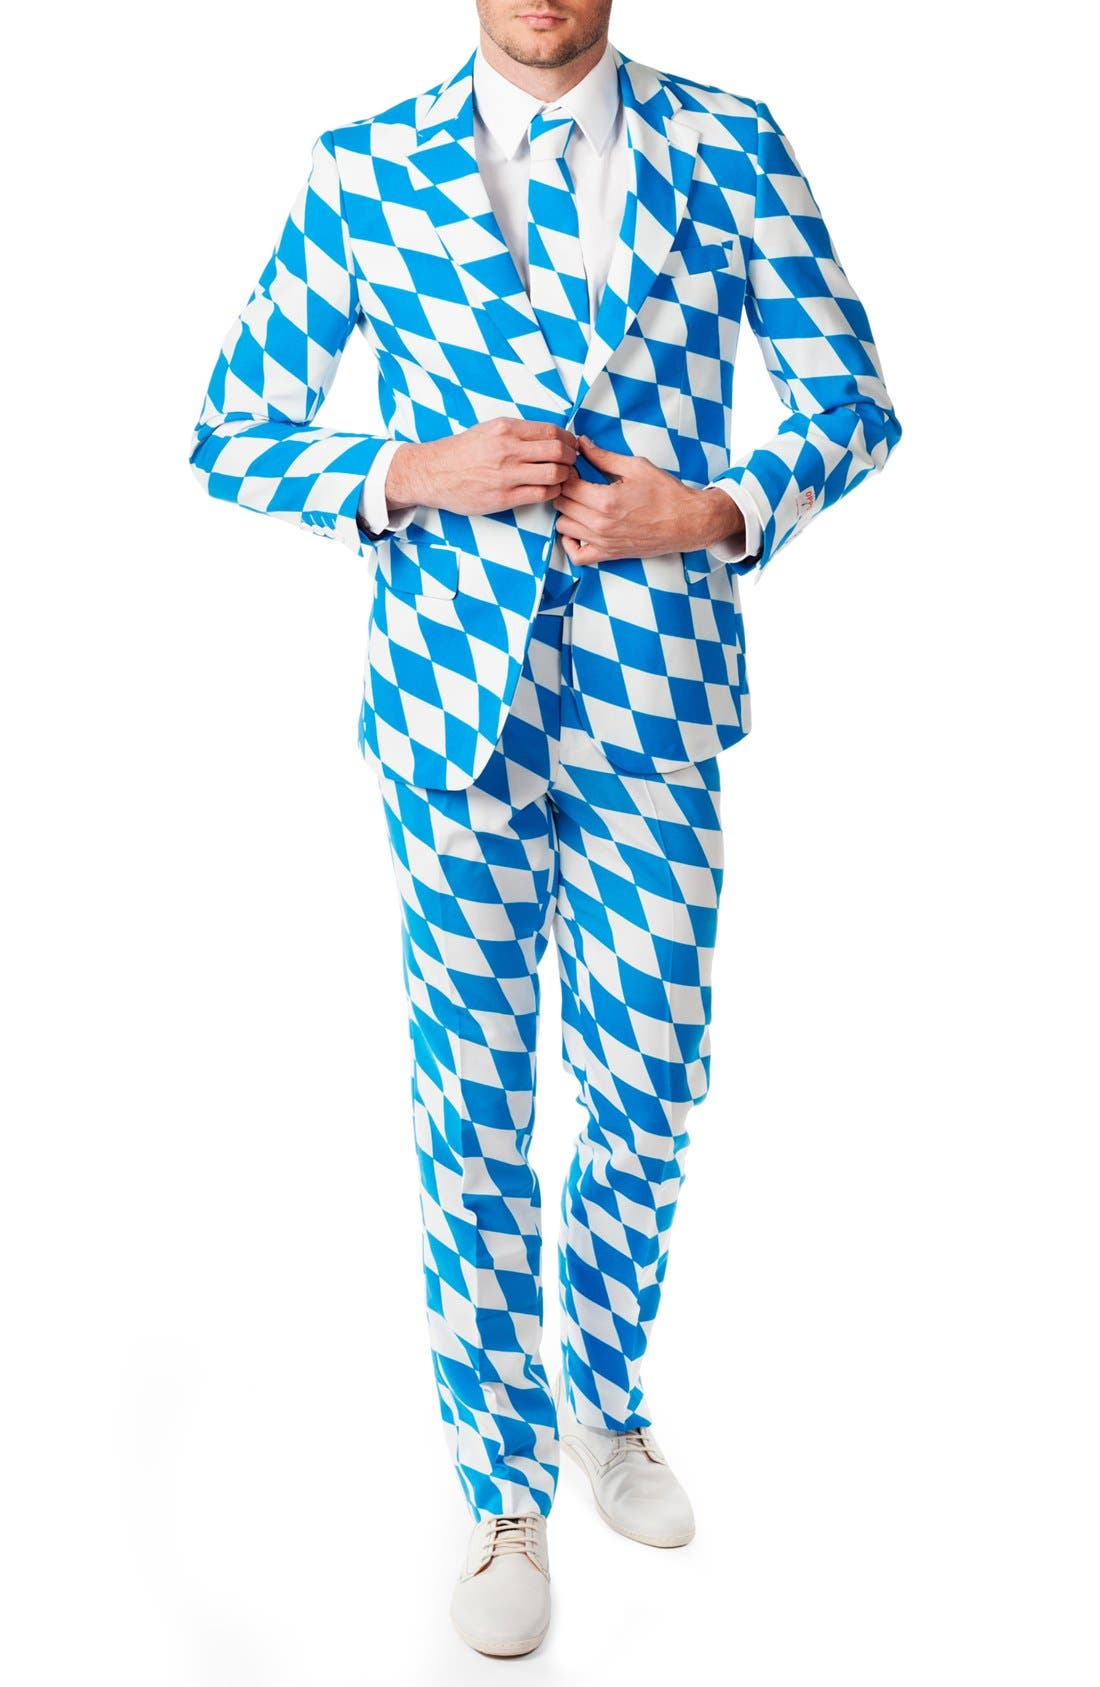 OppoSuits 'The Bavarian' Trim Fit Suit with Tie